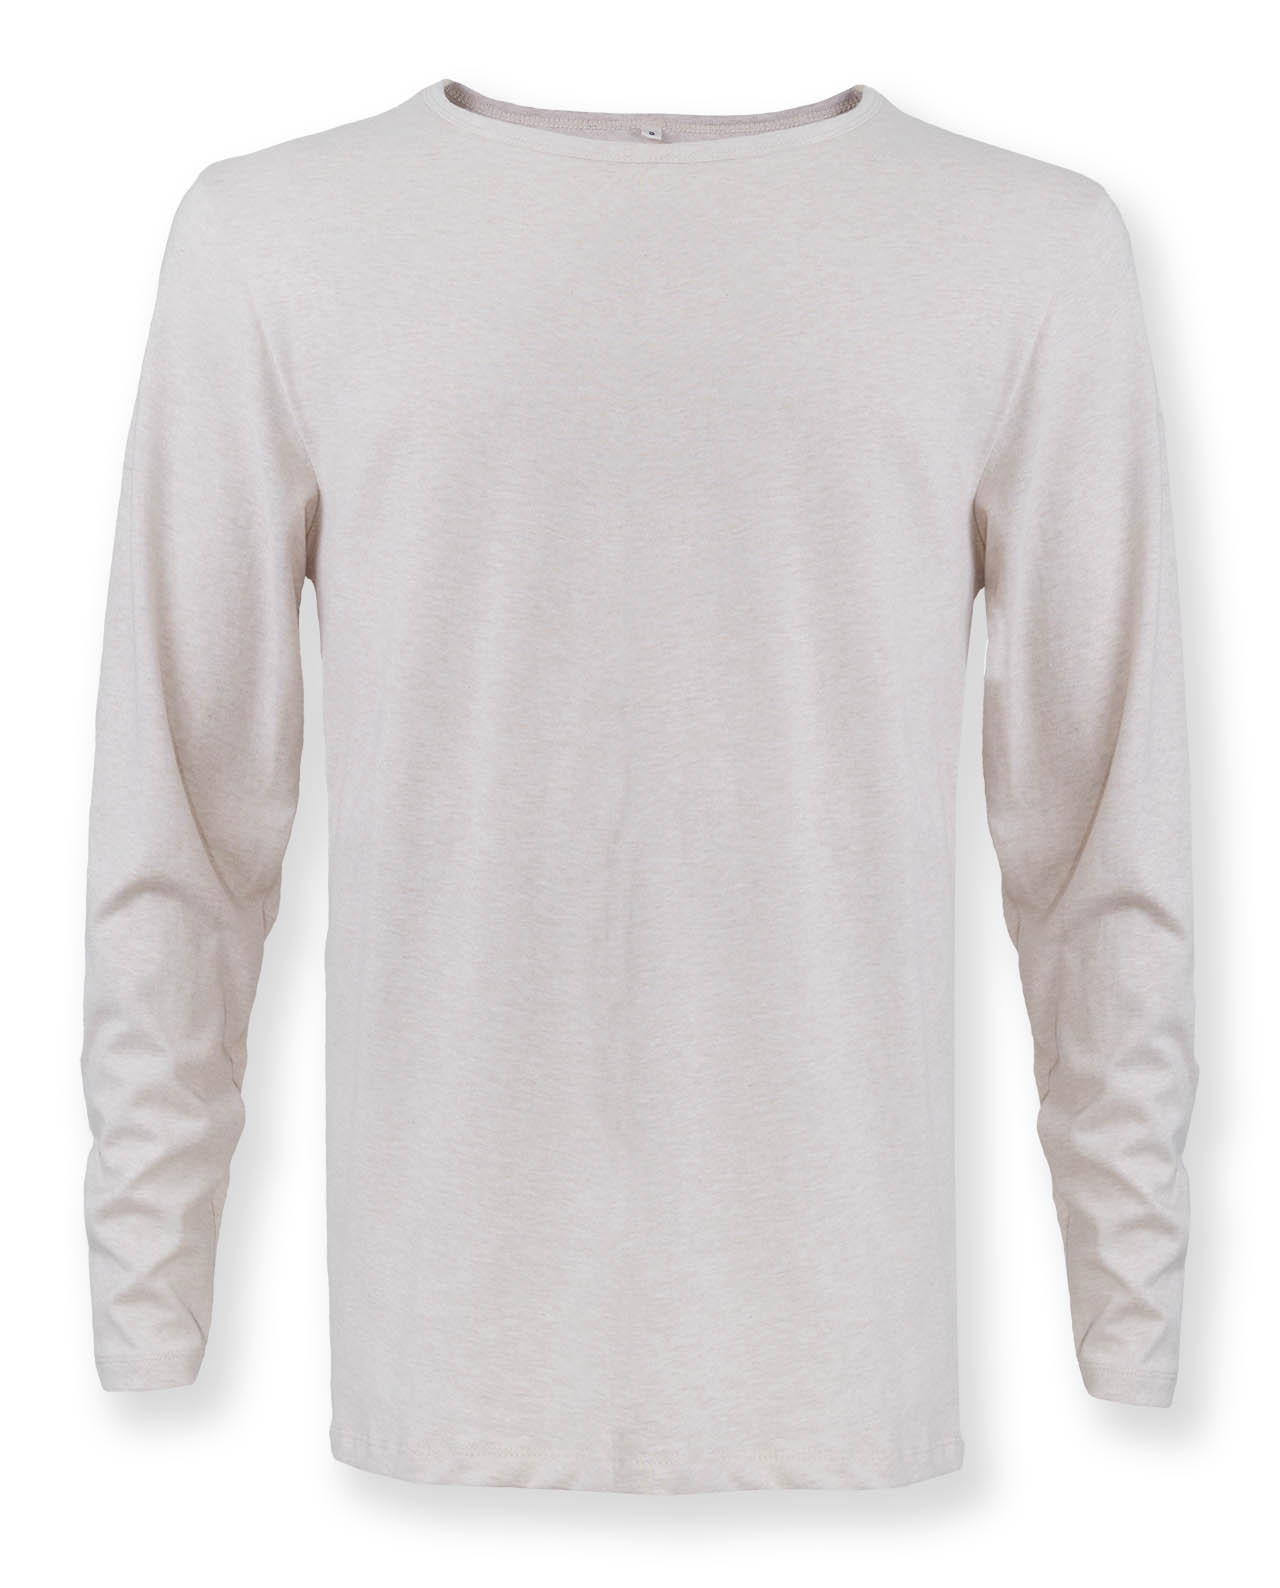 sweater wingdude, herren - degree